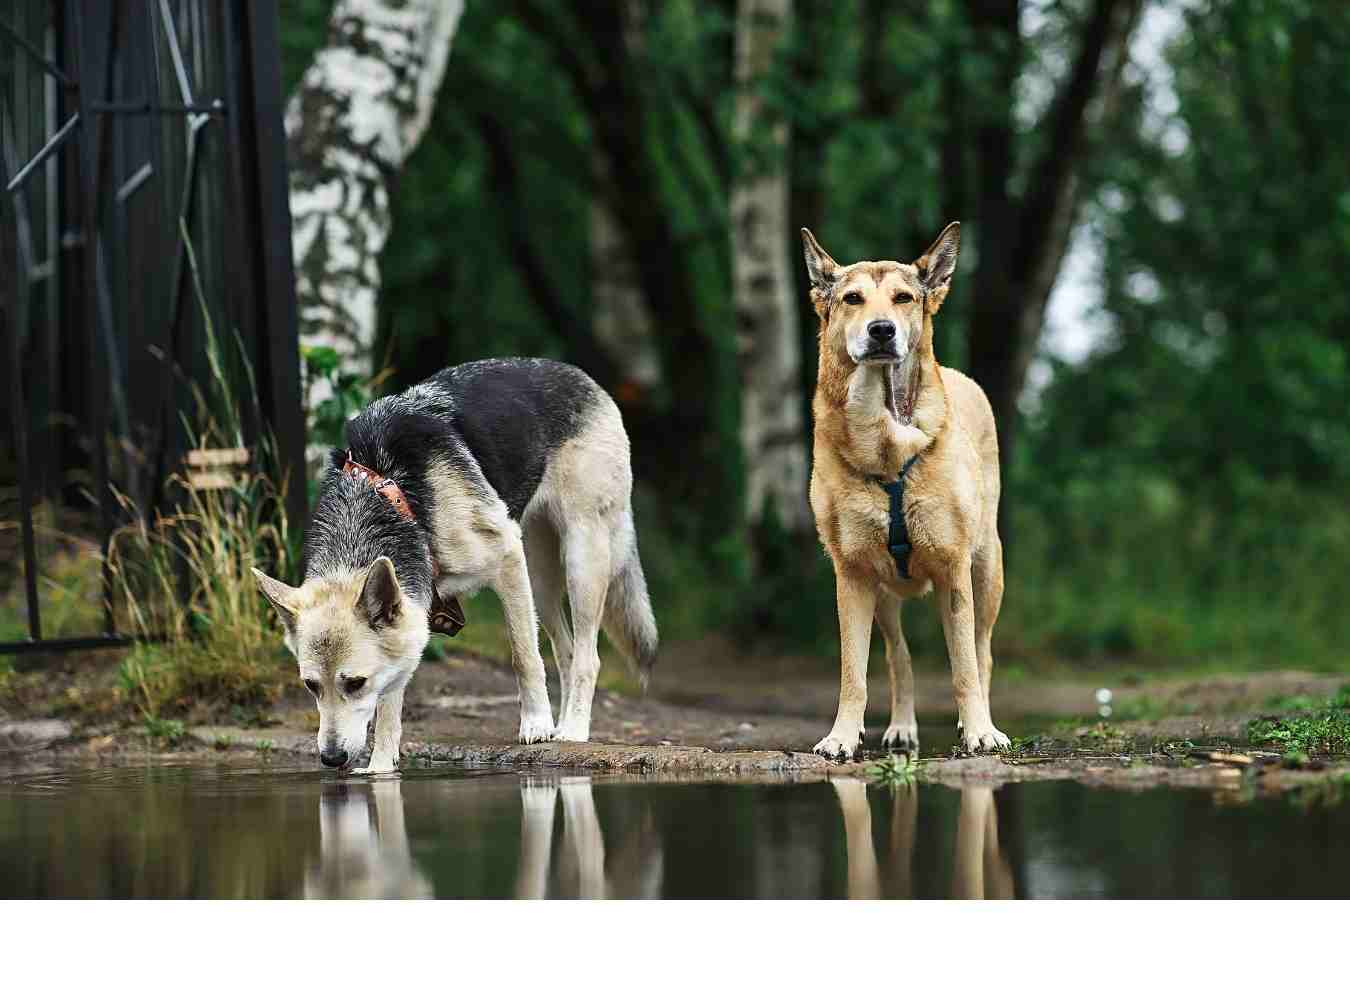 Dogs Drinking From Pond Needing Home Remedies for Giardia in Dogs